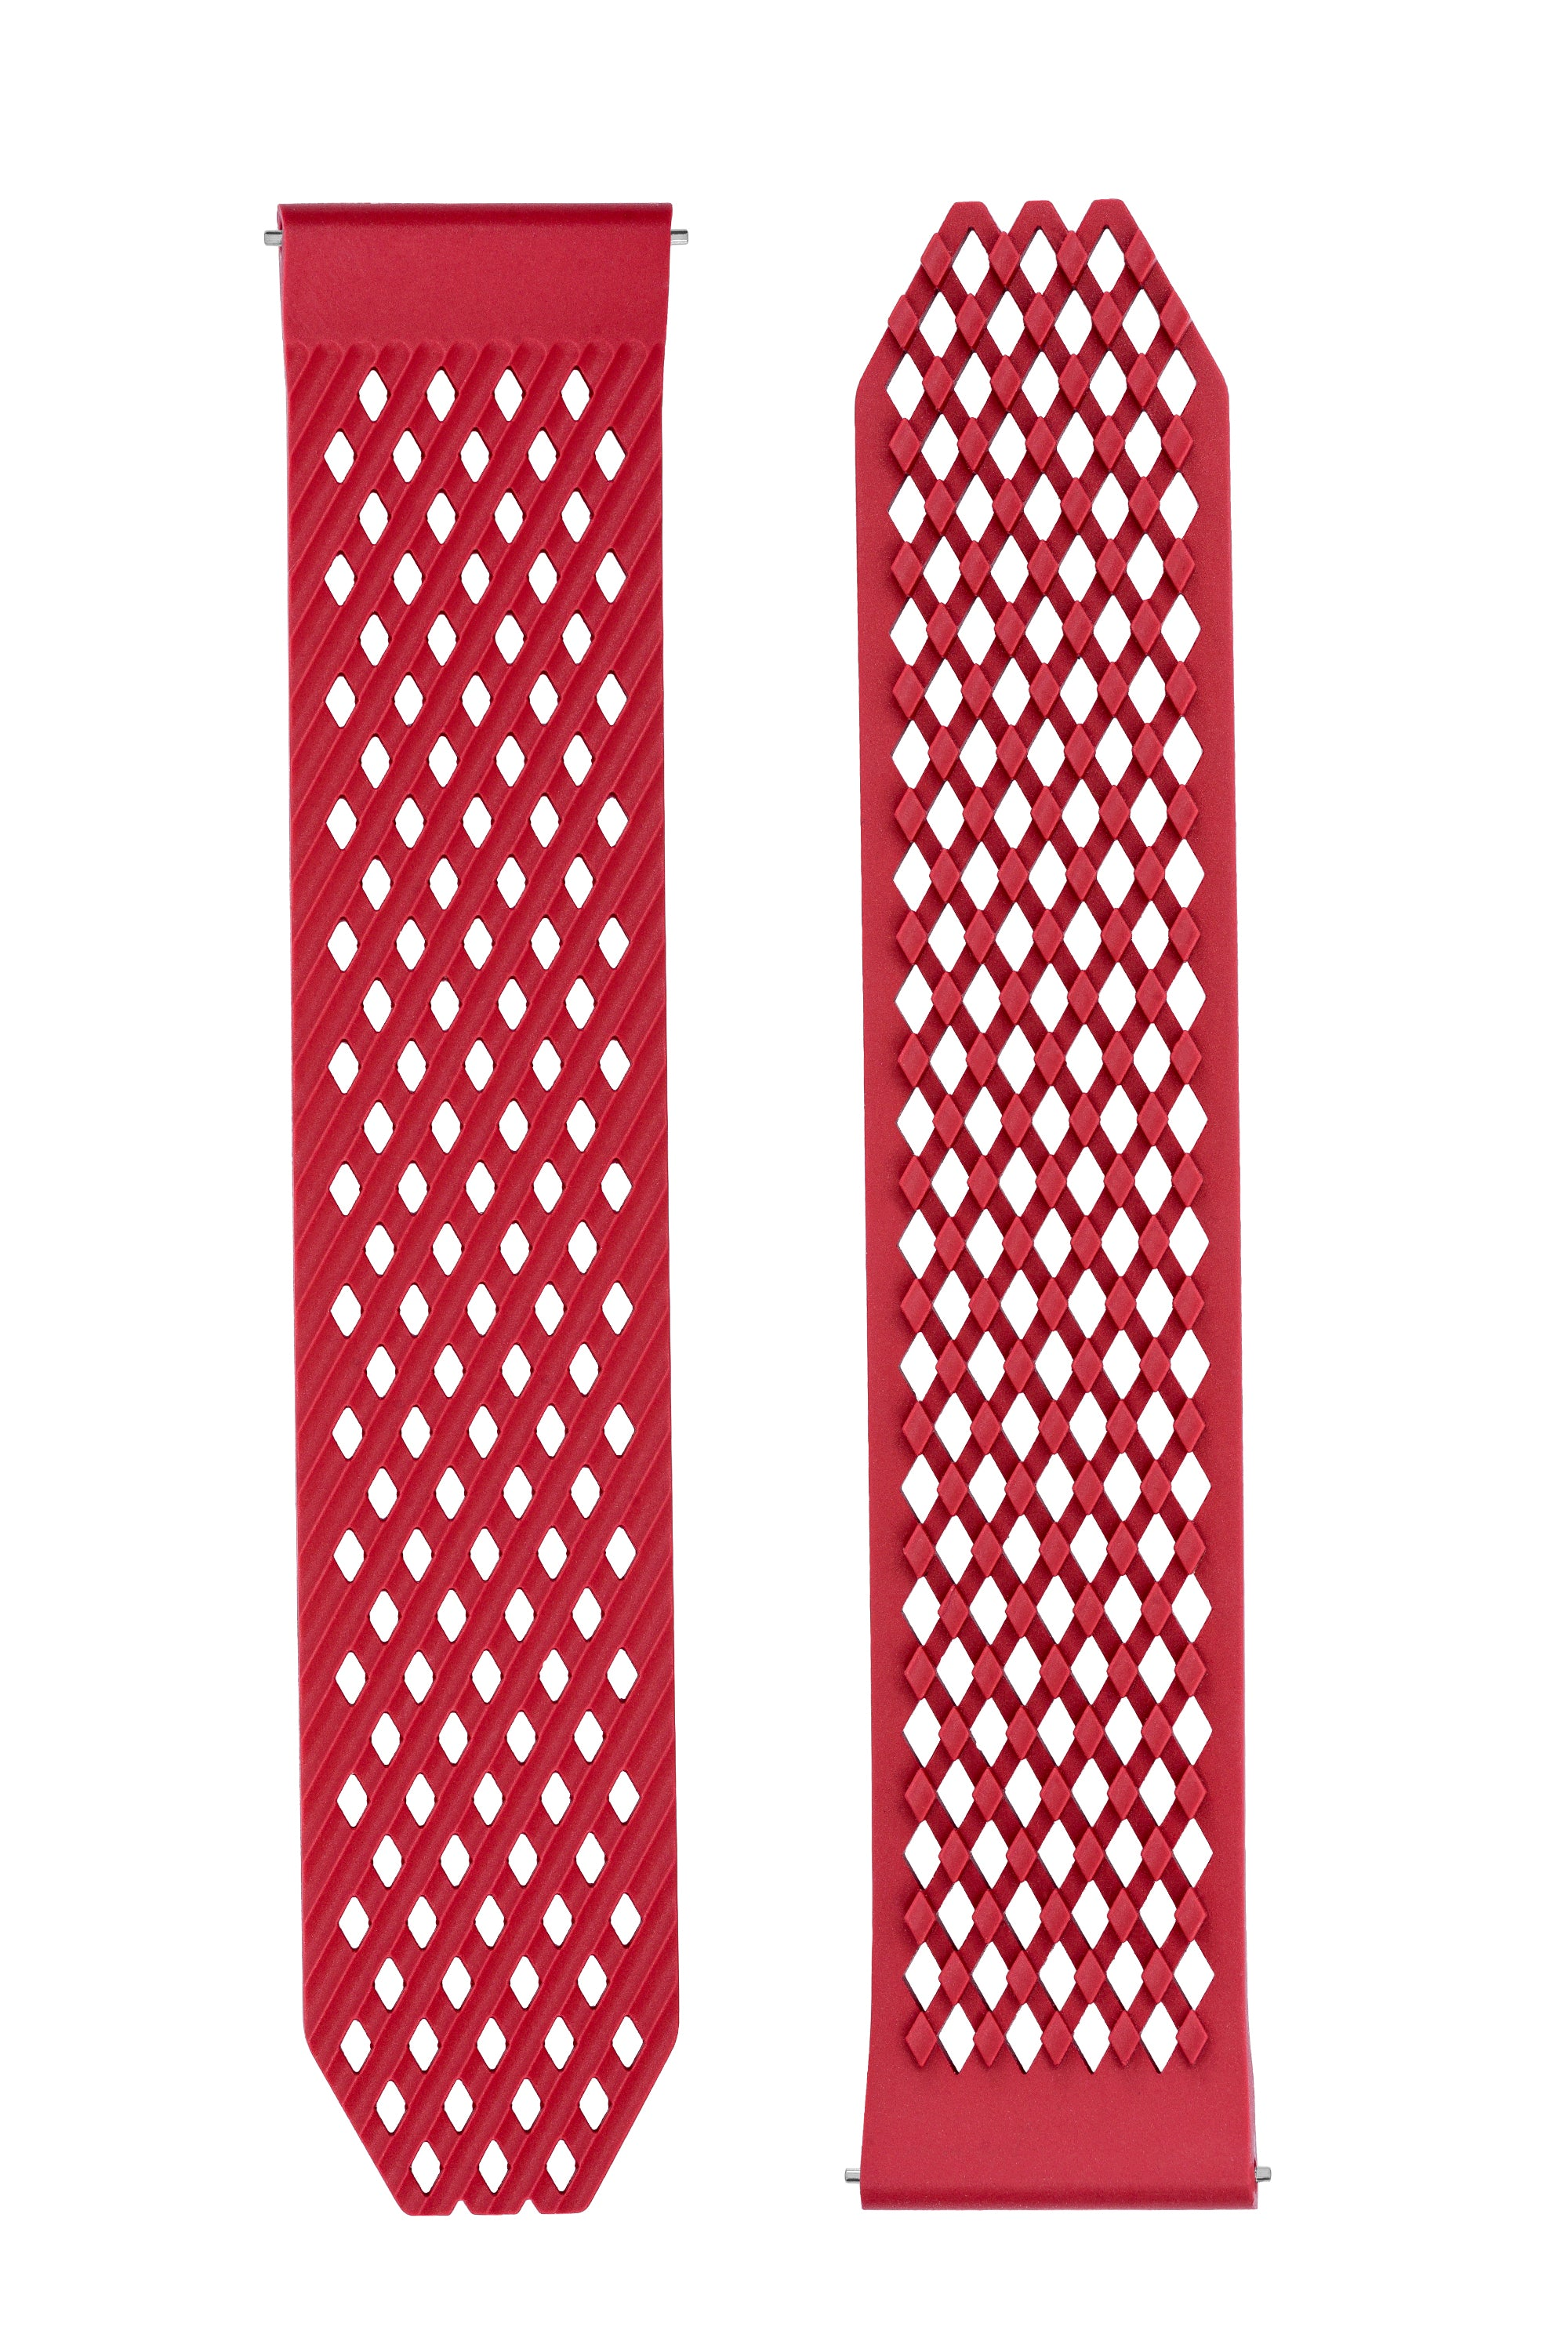 Noomoon LABB Interlocking Quick-Release Watch Strap in RED